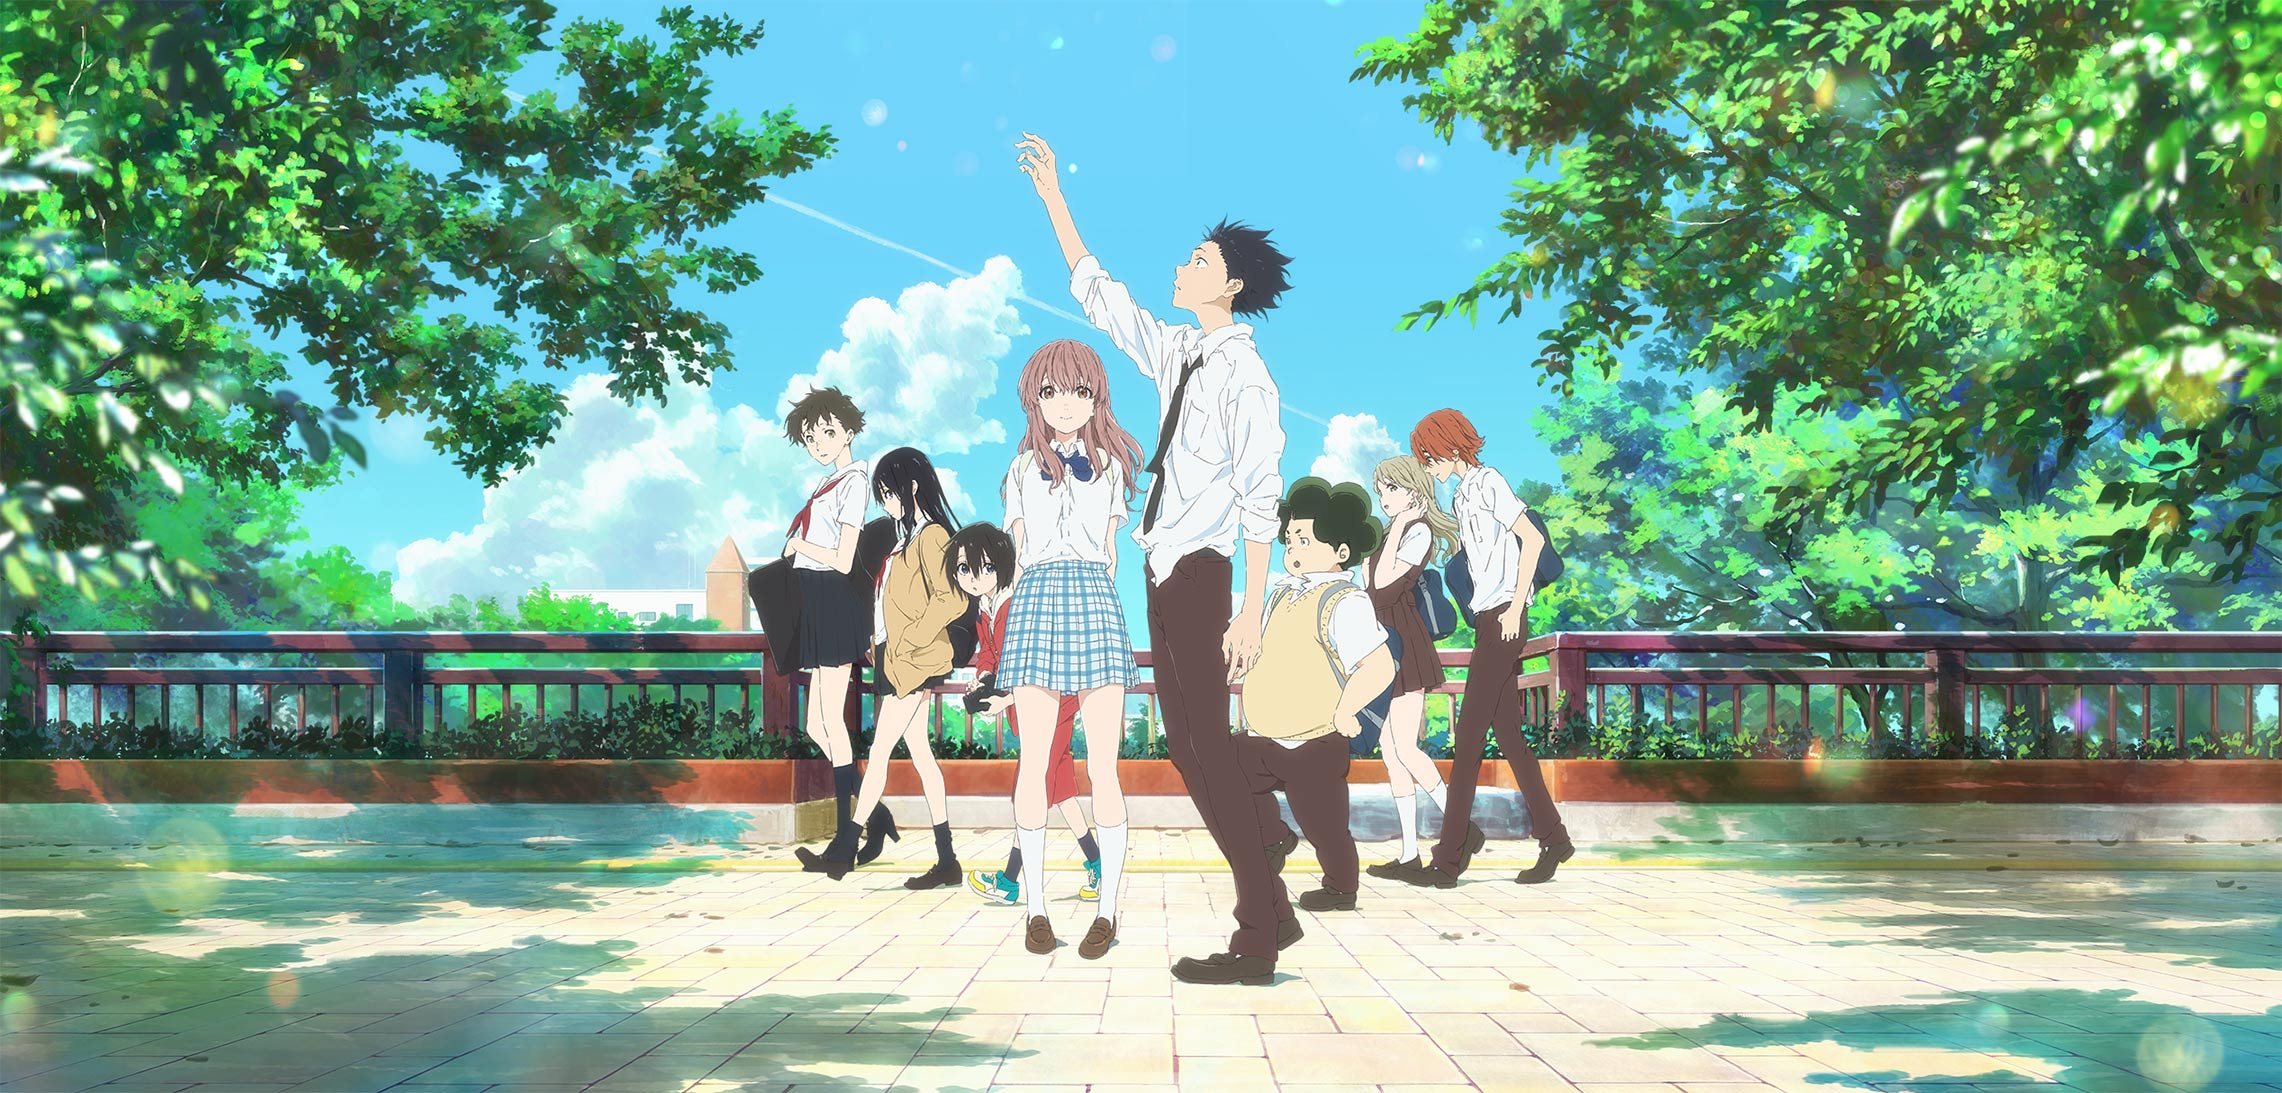 http://koenokatachi-movie.com/img/top/keyvisual.jpg